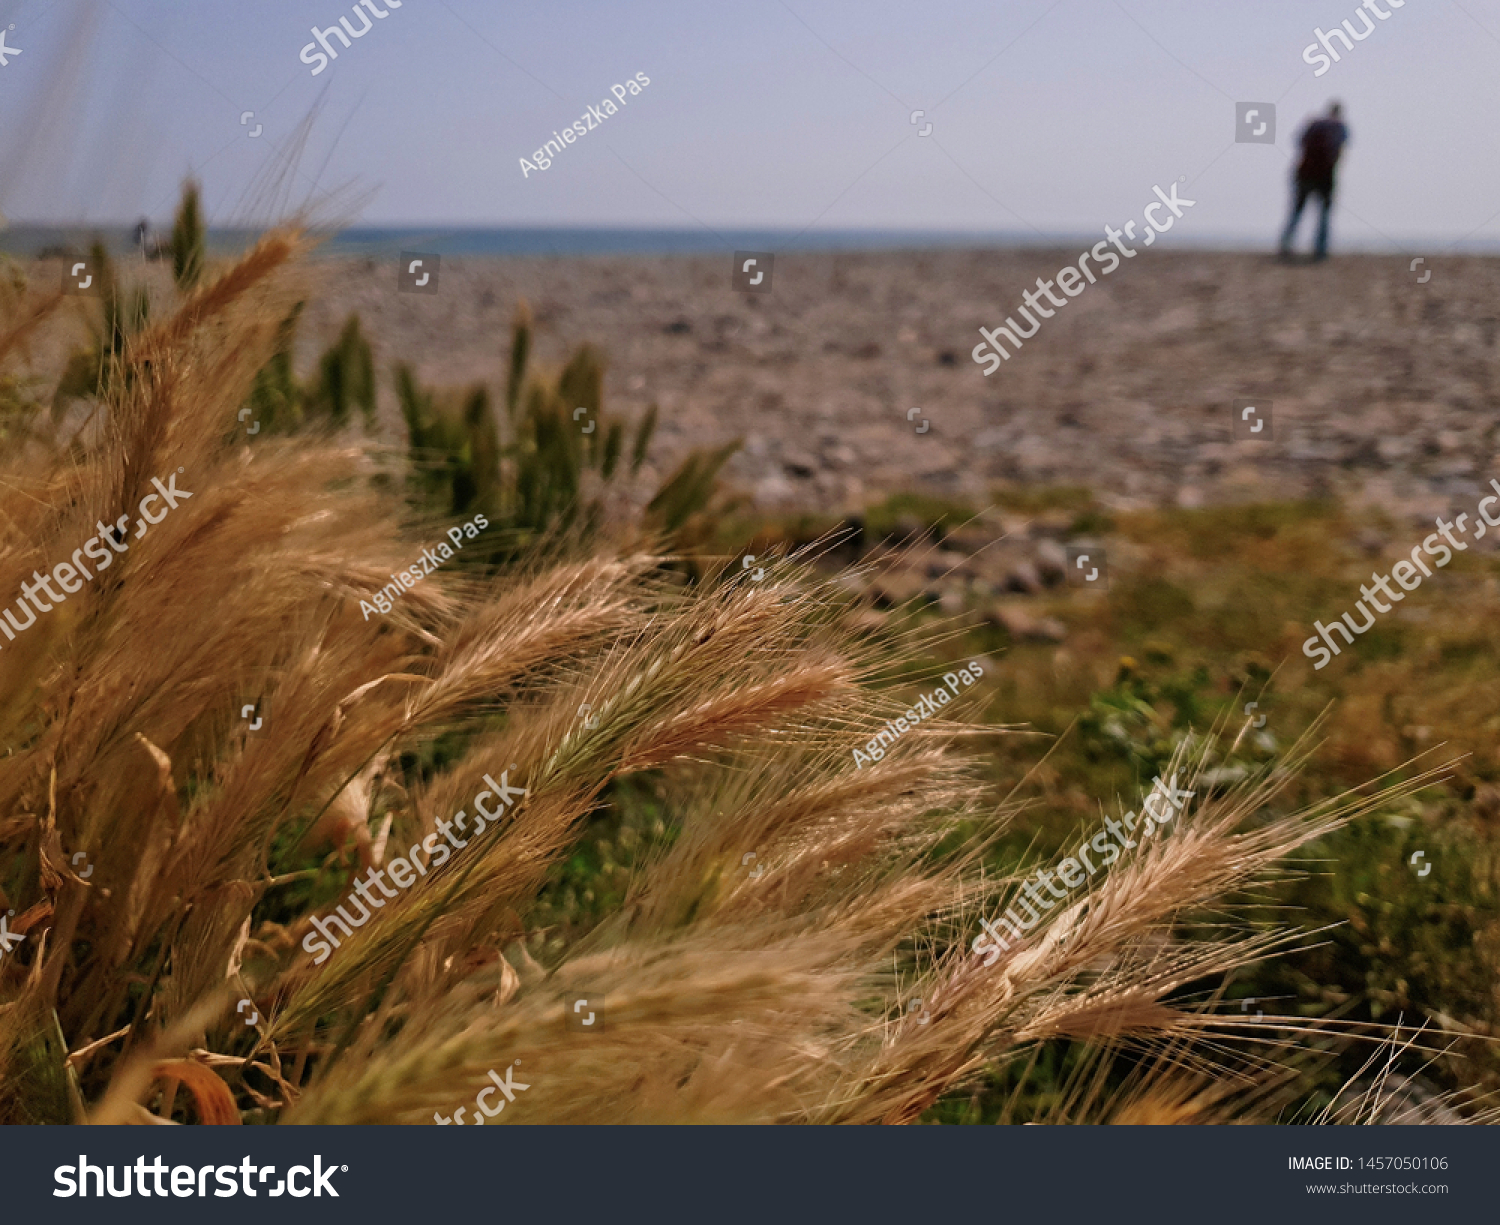 Heads of wheat on the beach with a blurred man walking in the background.